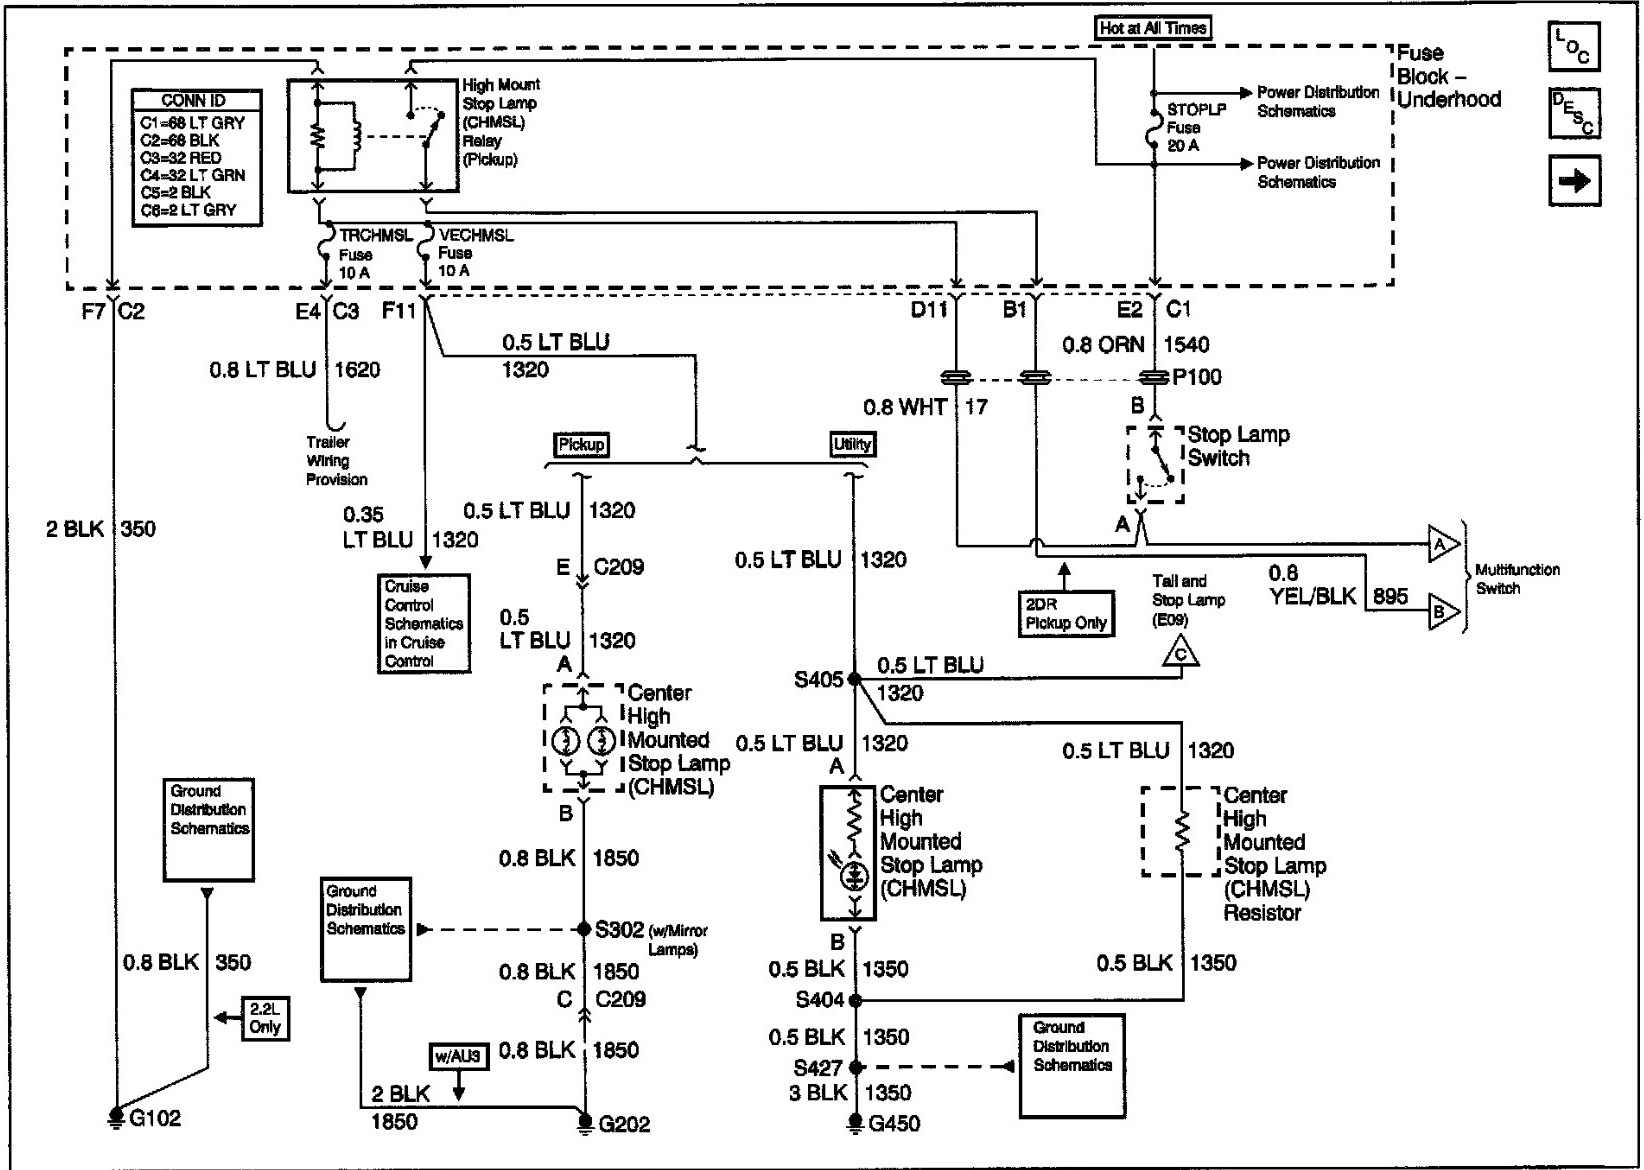 C8500 Wiring Diagram 2004 Not Lossing 2008 Chevy Gmc C6500 Schematics Tracker Schematic 2005 Chevrolet Dump Truck